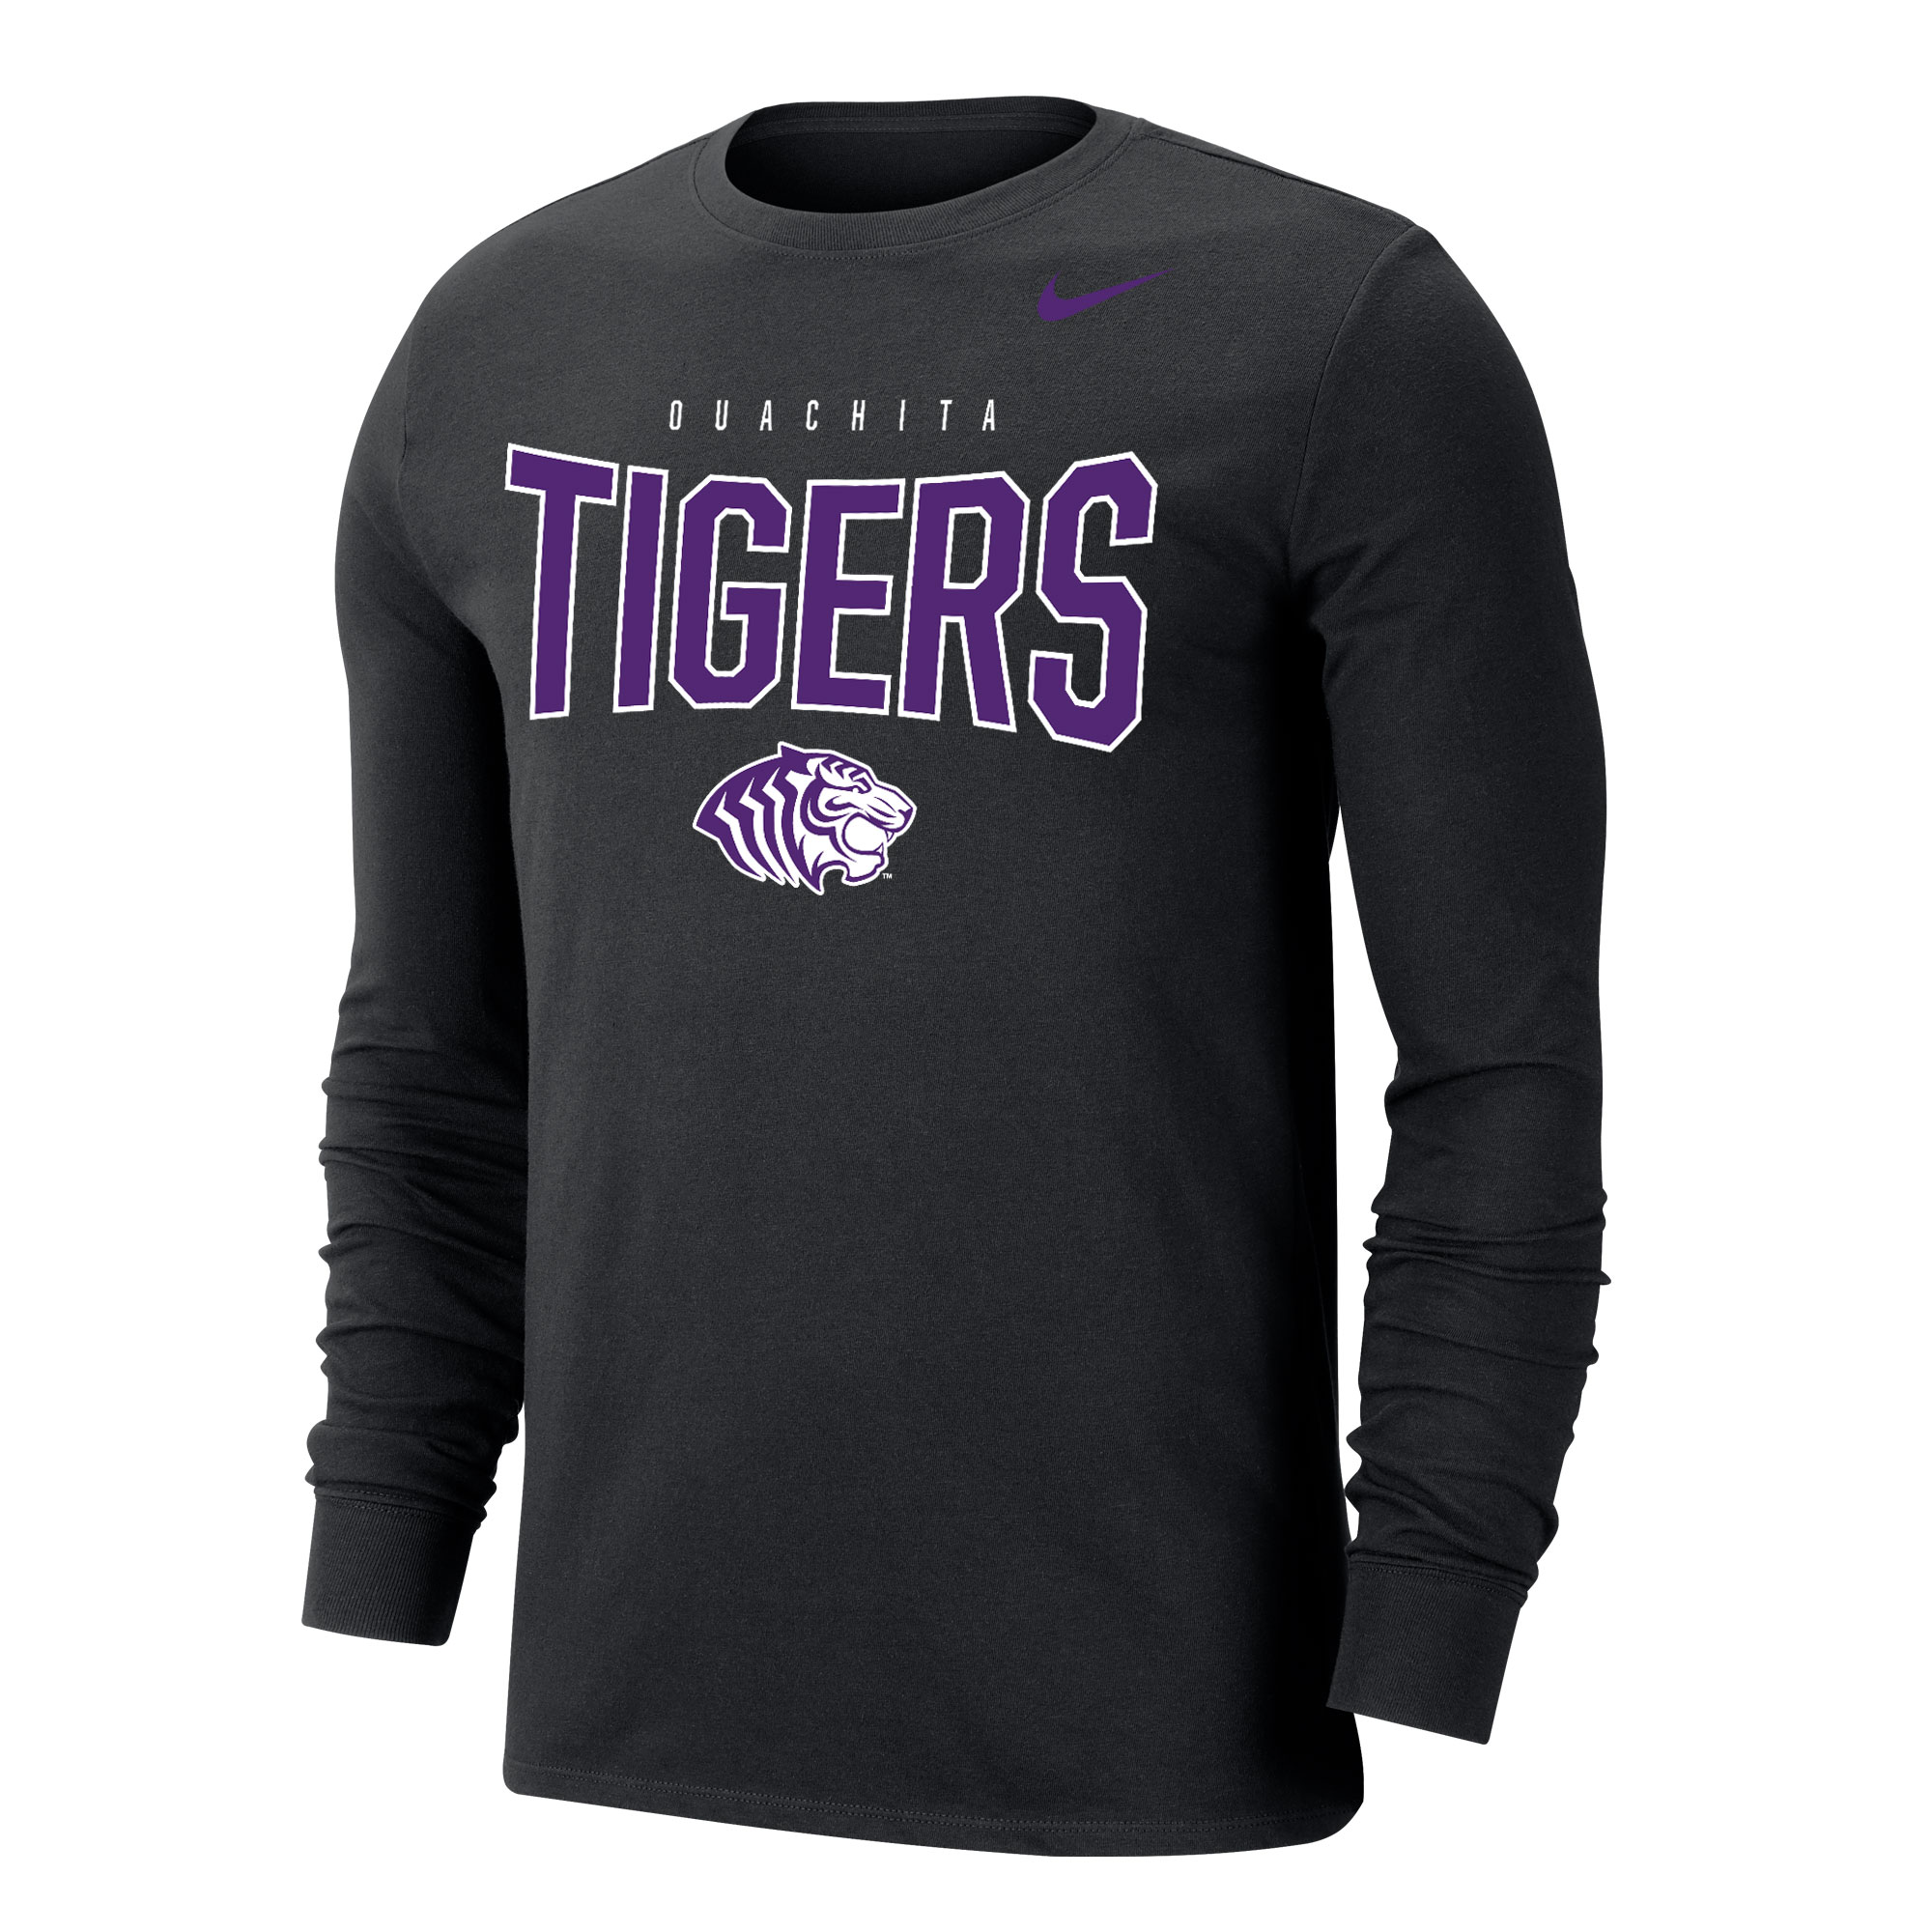 OUACHITA TIGERS NIKE DRI-FIT LS TEE